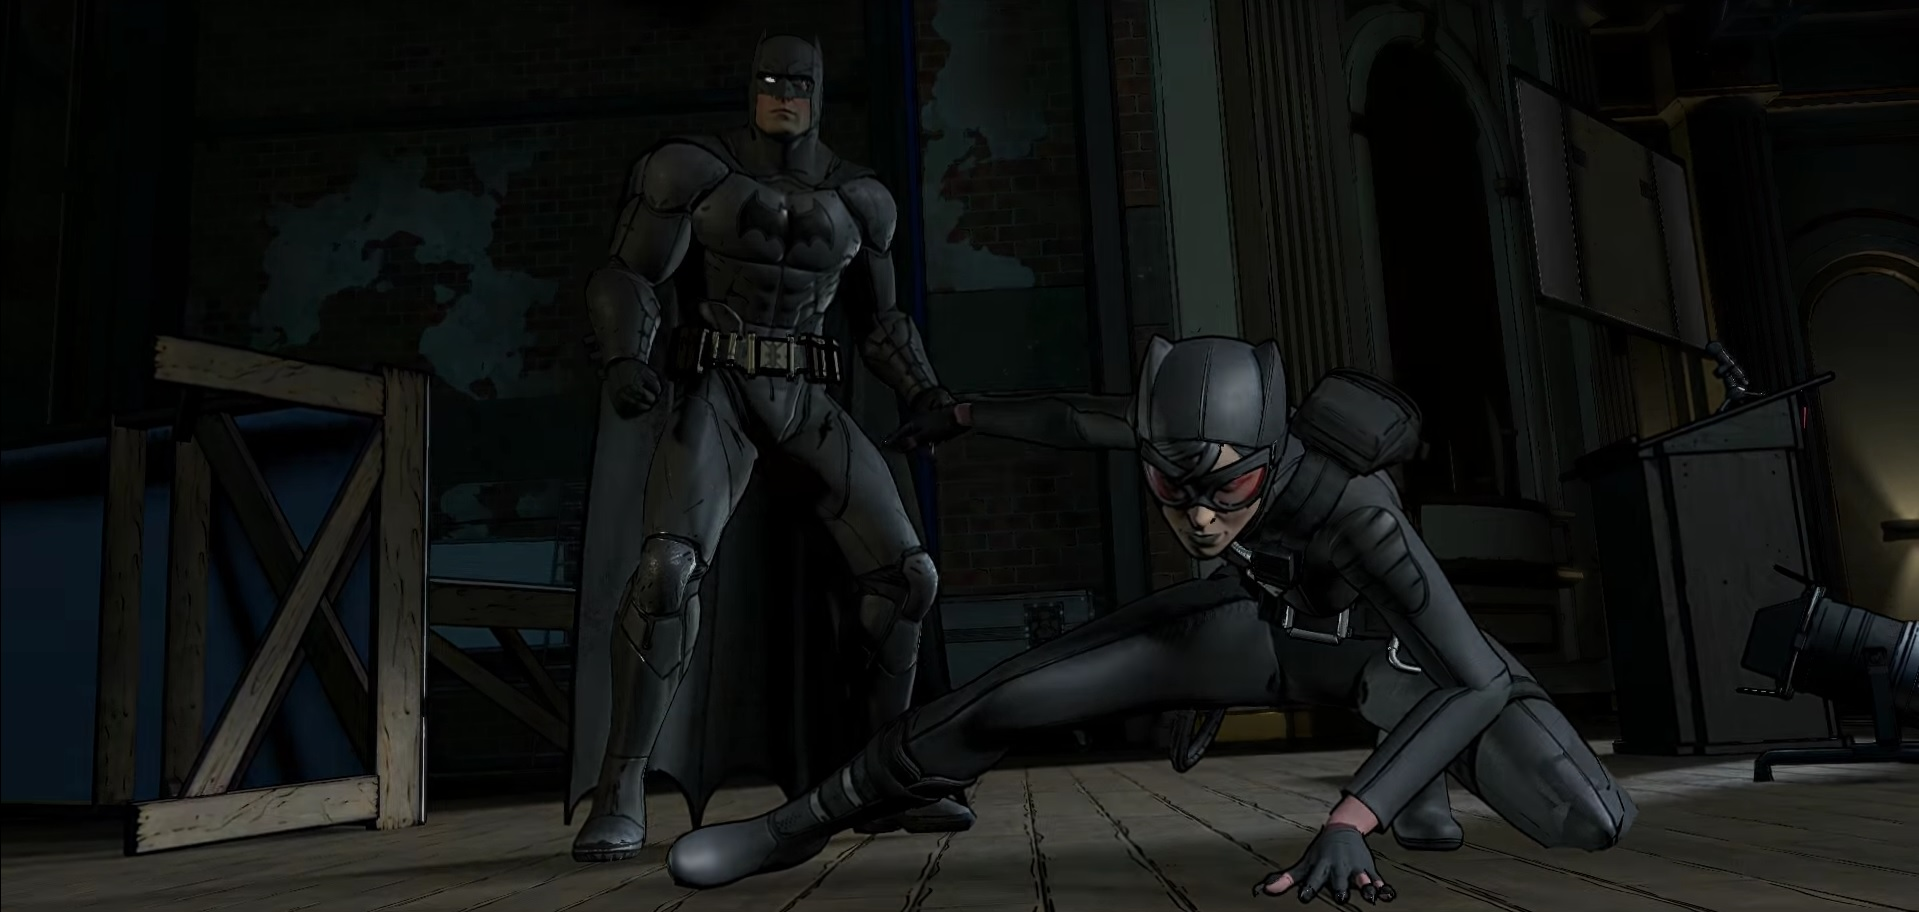 batman-the-telltale-series-episode-2-screenshot-003